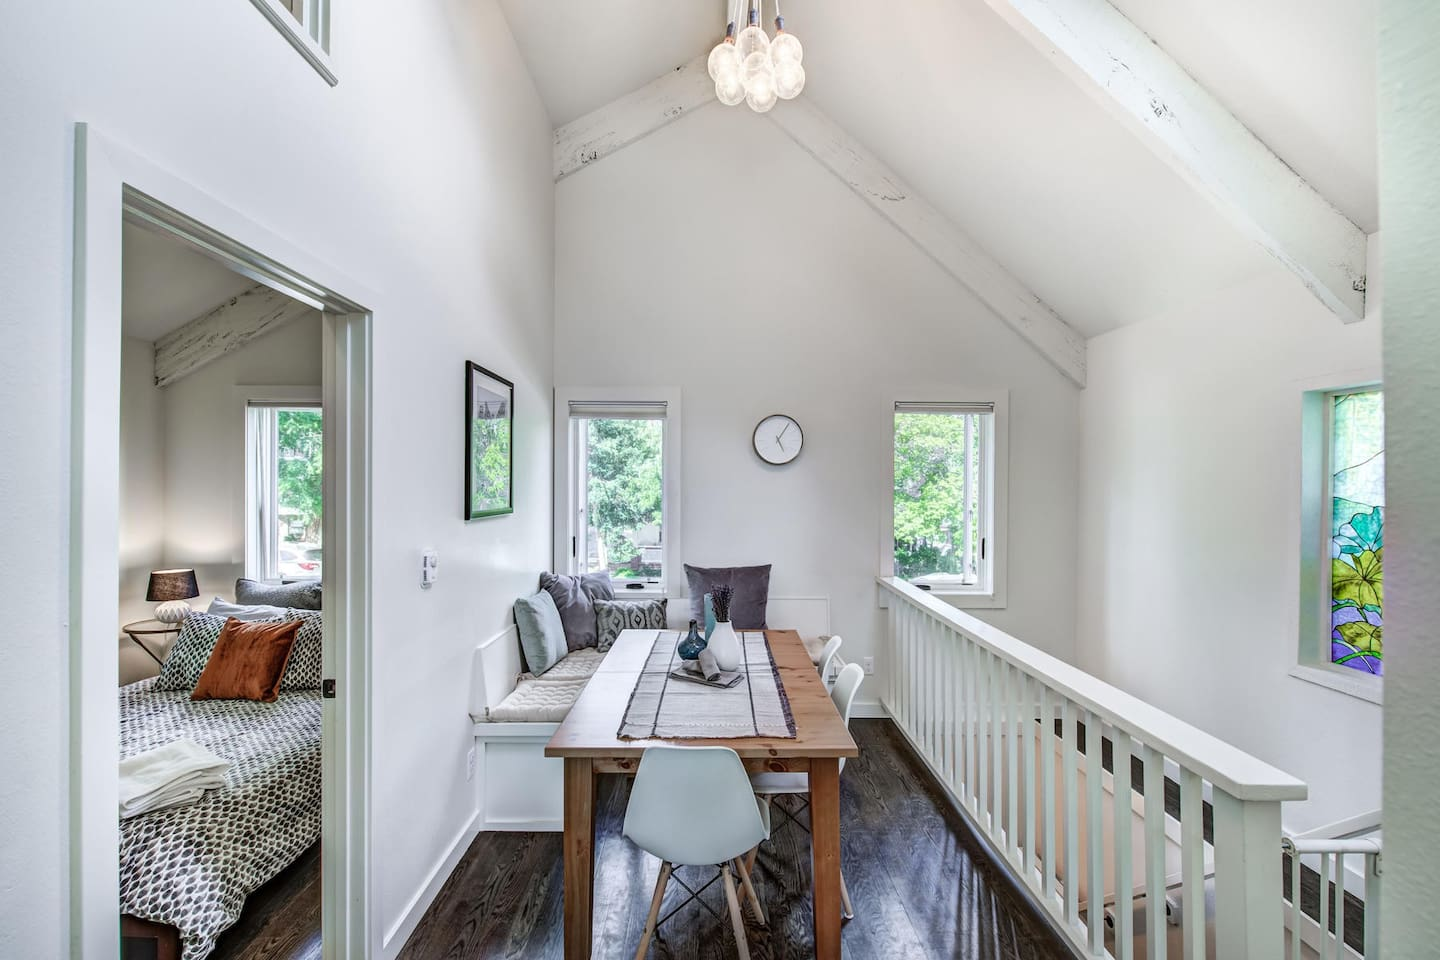 Bright, Airy, Tranquil Airbnb Boulder Home-Away